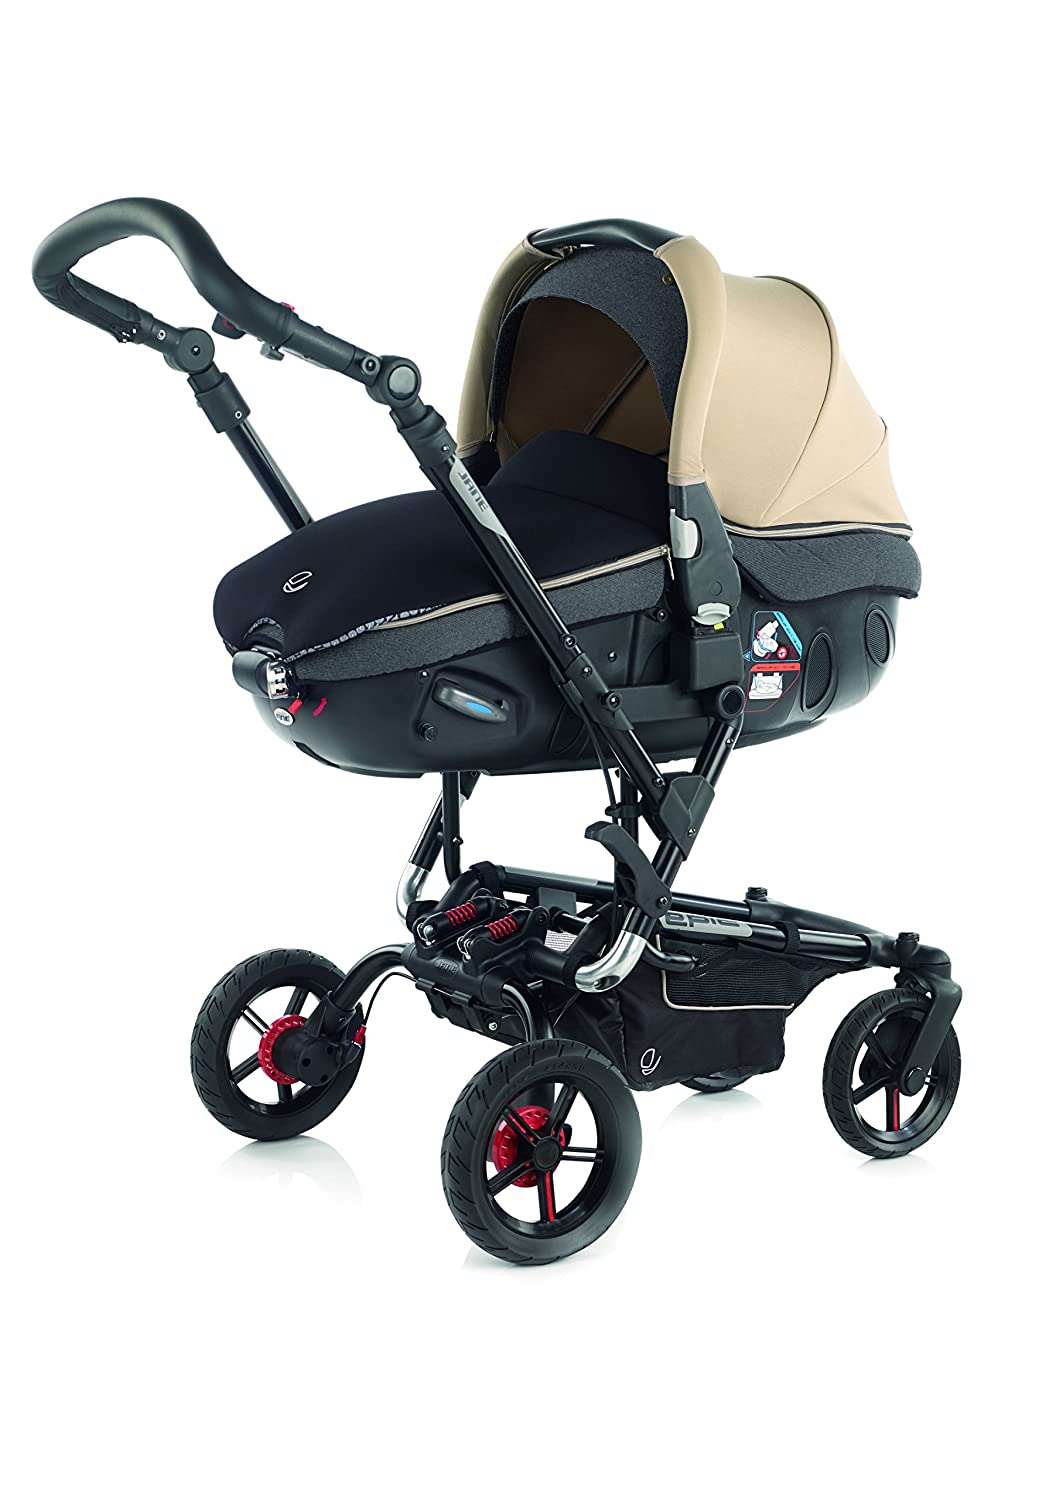 Jane - Coche de Paseo Duo Jané Epic 5379 Matrix Light 2 beige: Amazon.es: Bebé